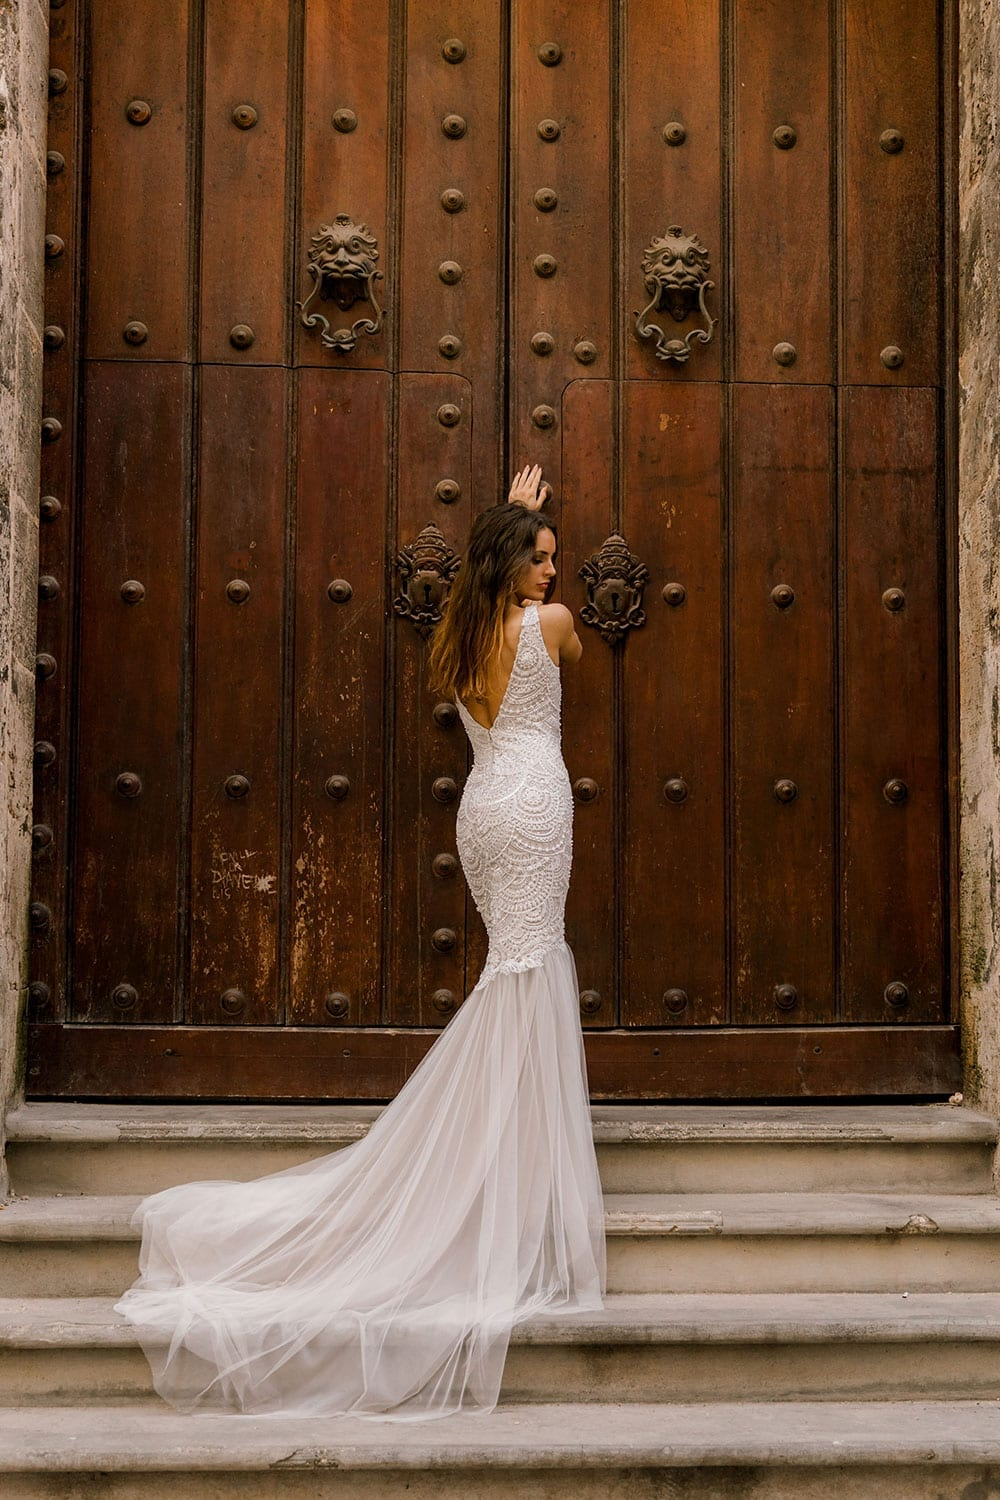 Model wearing Vinka Design Carlotta Wedding Dress, a V-Neck Beaded Mermaid Dress on the streets of Havana in front of an old wooden door with dress flowing down the steps